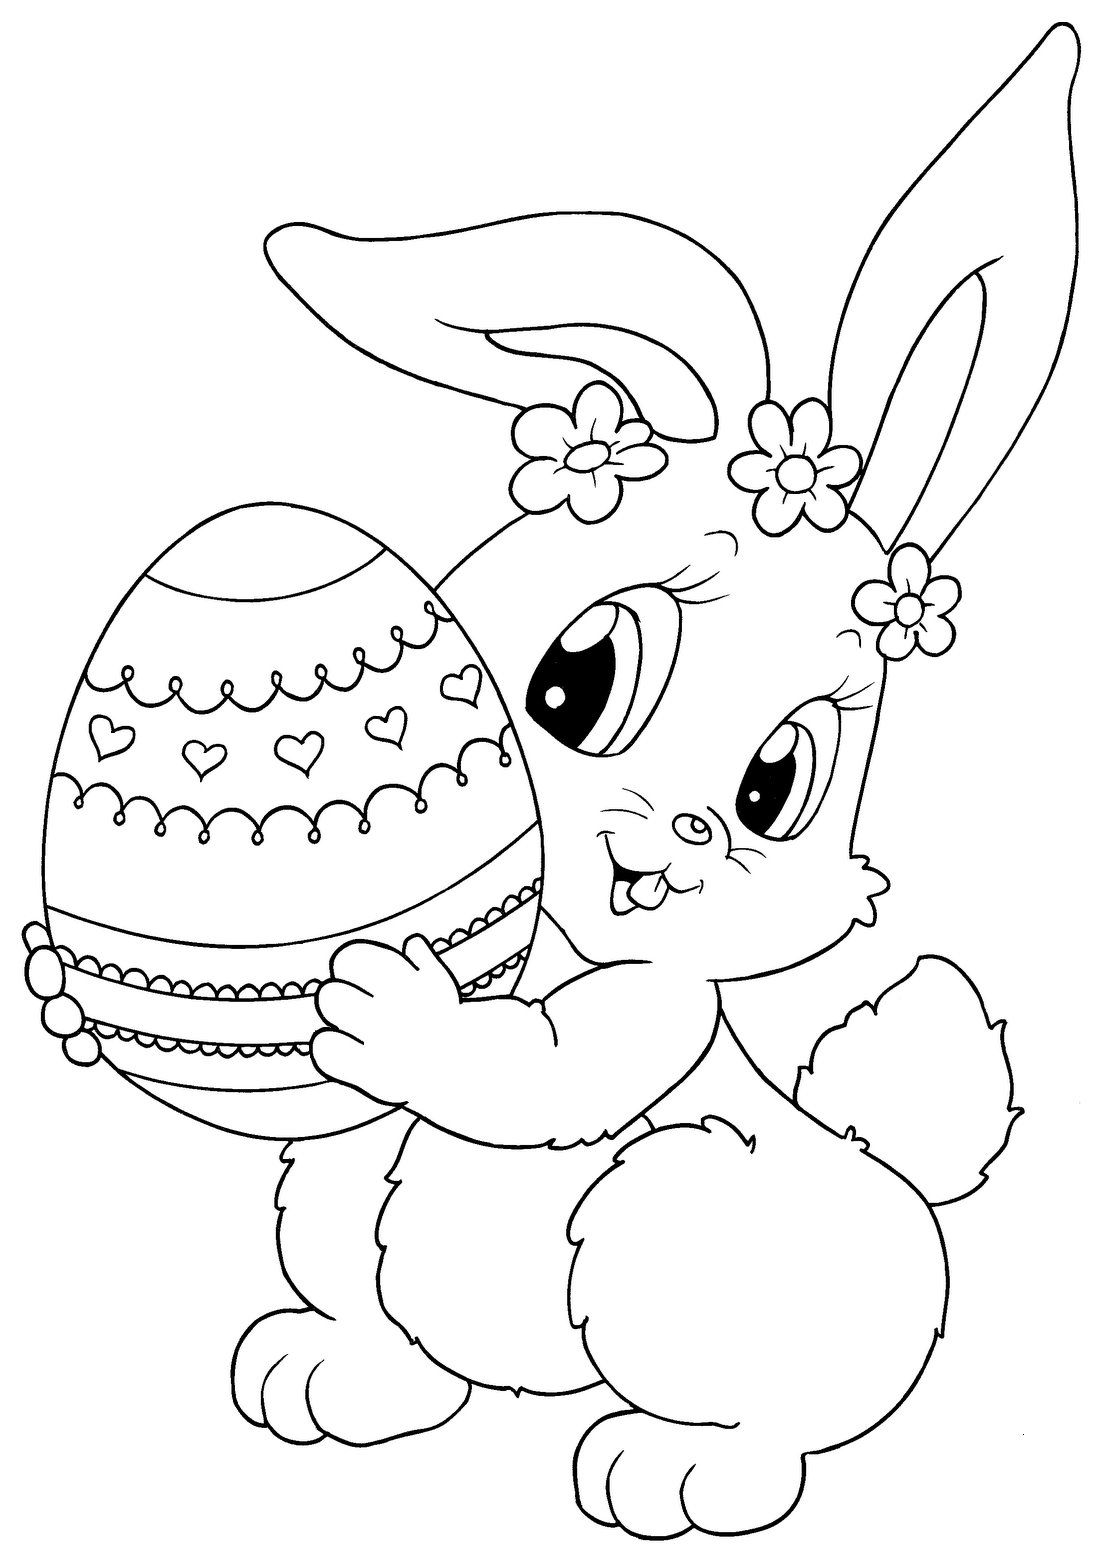 easter bunny coloring in pages | Top 15 Free Printable Easter Bunny Coloring Pages Online ...